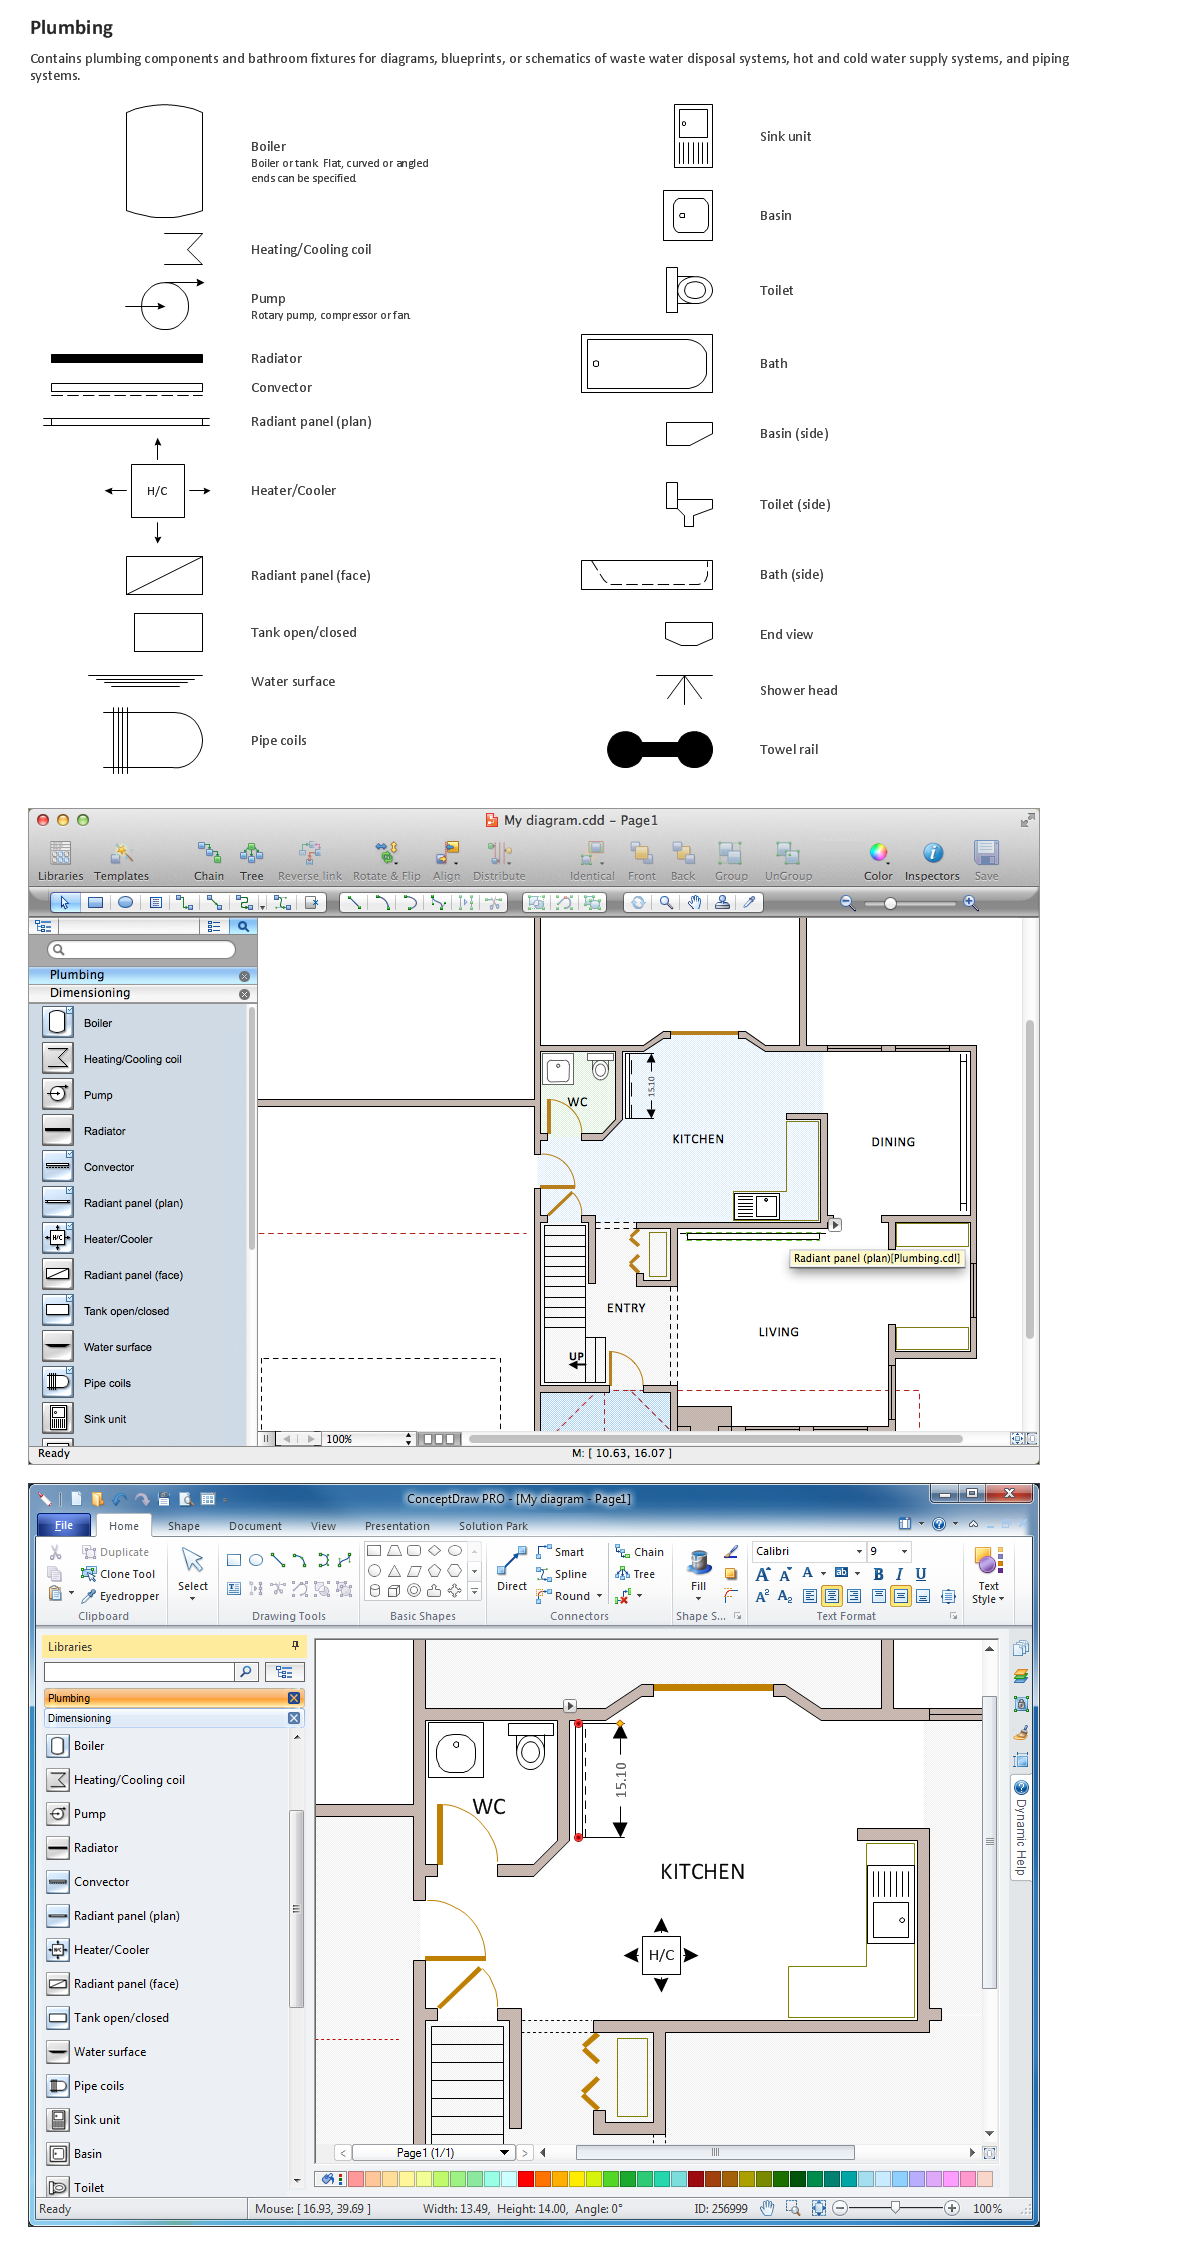 hight resolution of building drawing tools design elements plumbing electrical plan electrical symbols electrical diagram